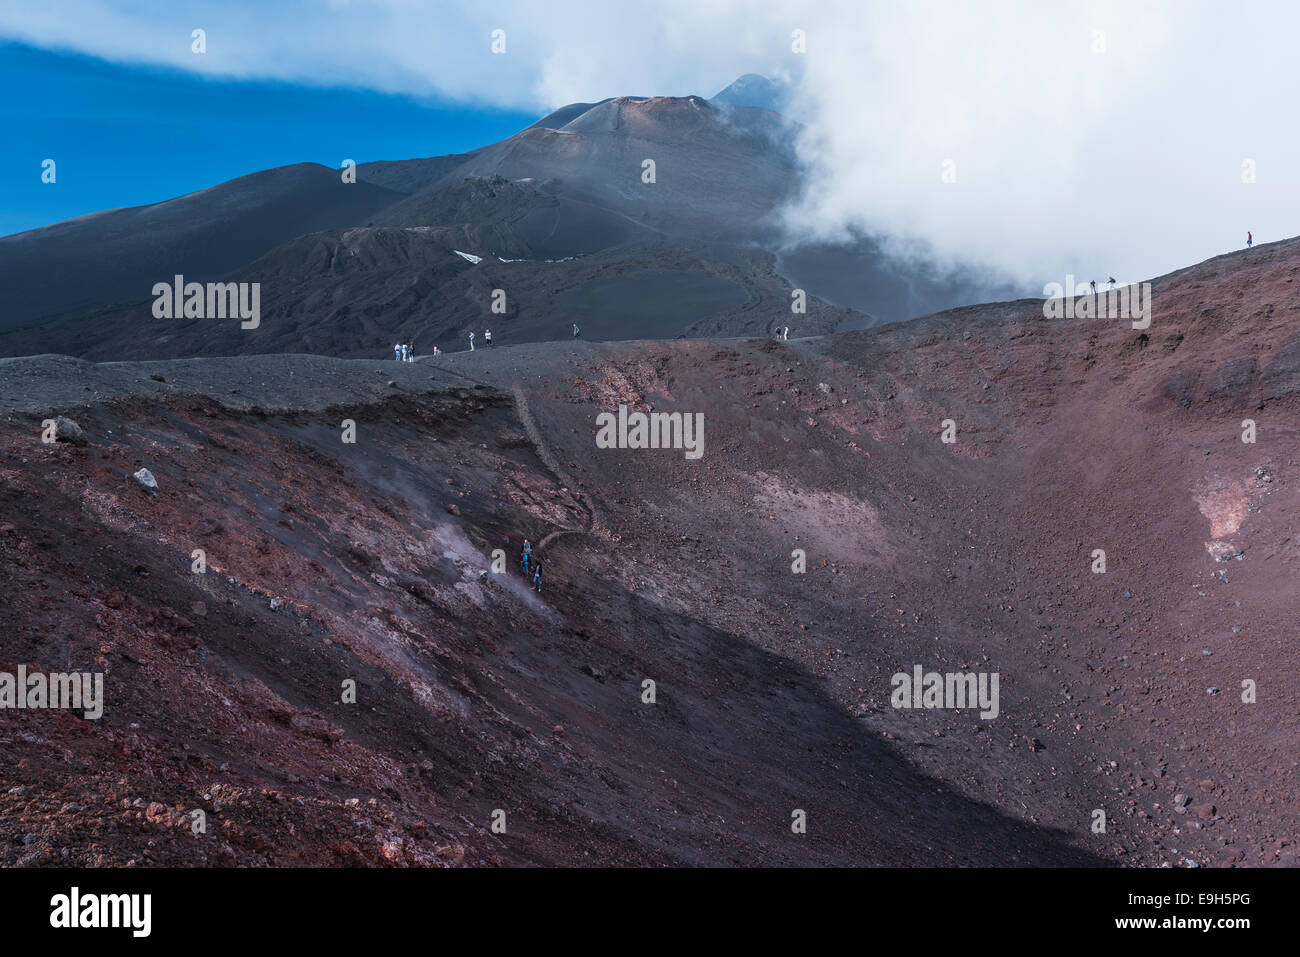 Tourists on the La Montagnola crater, lava fields behind, south side, Mount Etna in Zafferana, Sicily, Italy - Stock Image